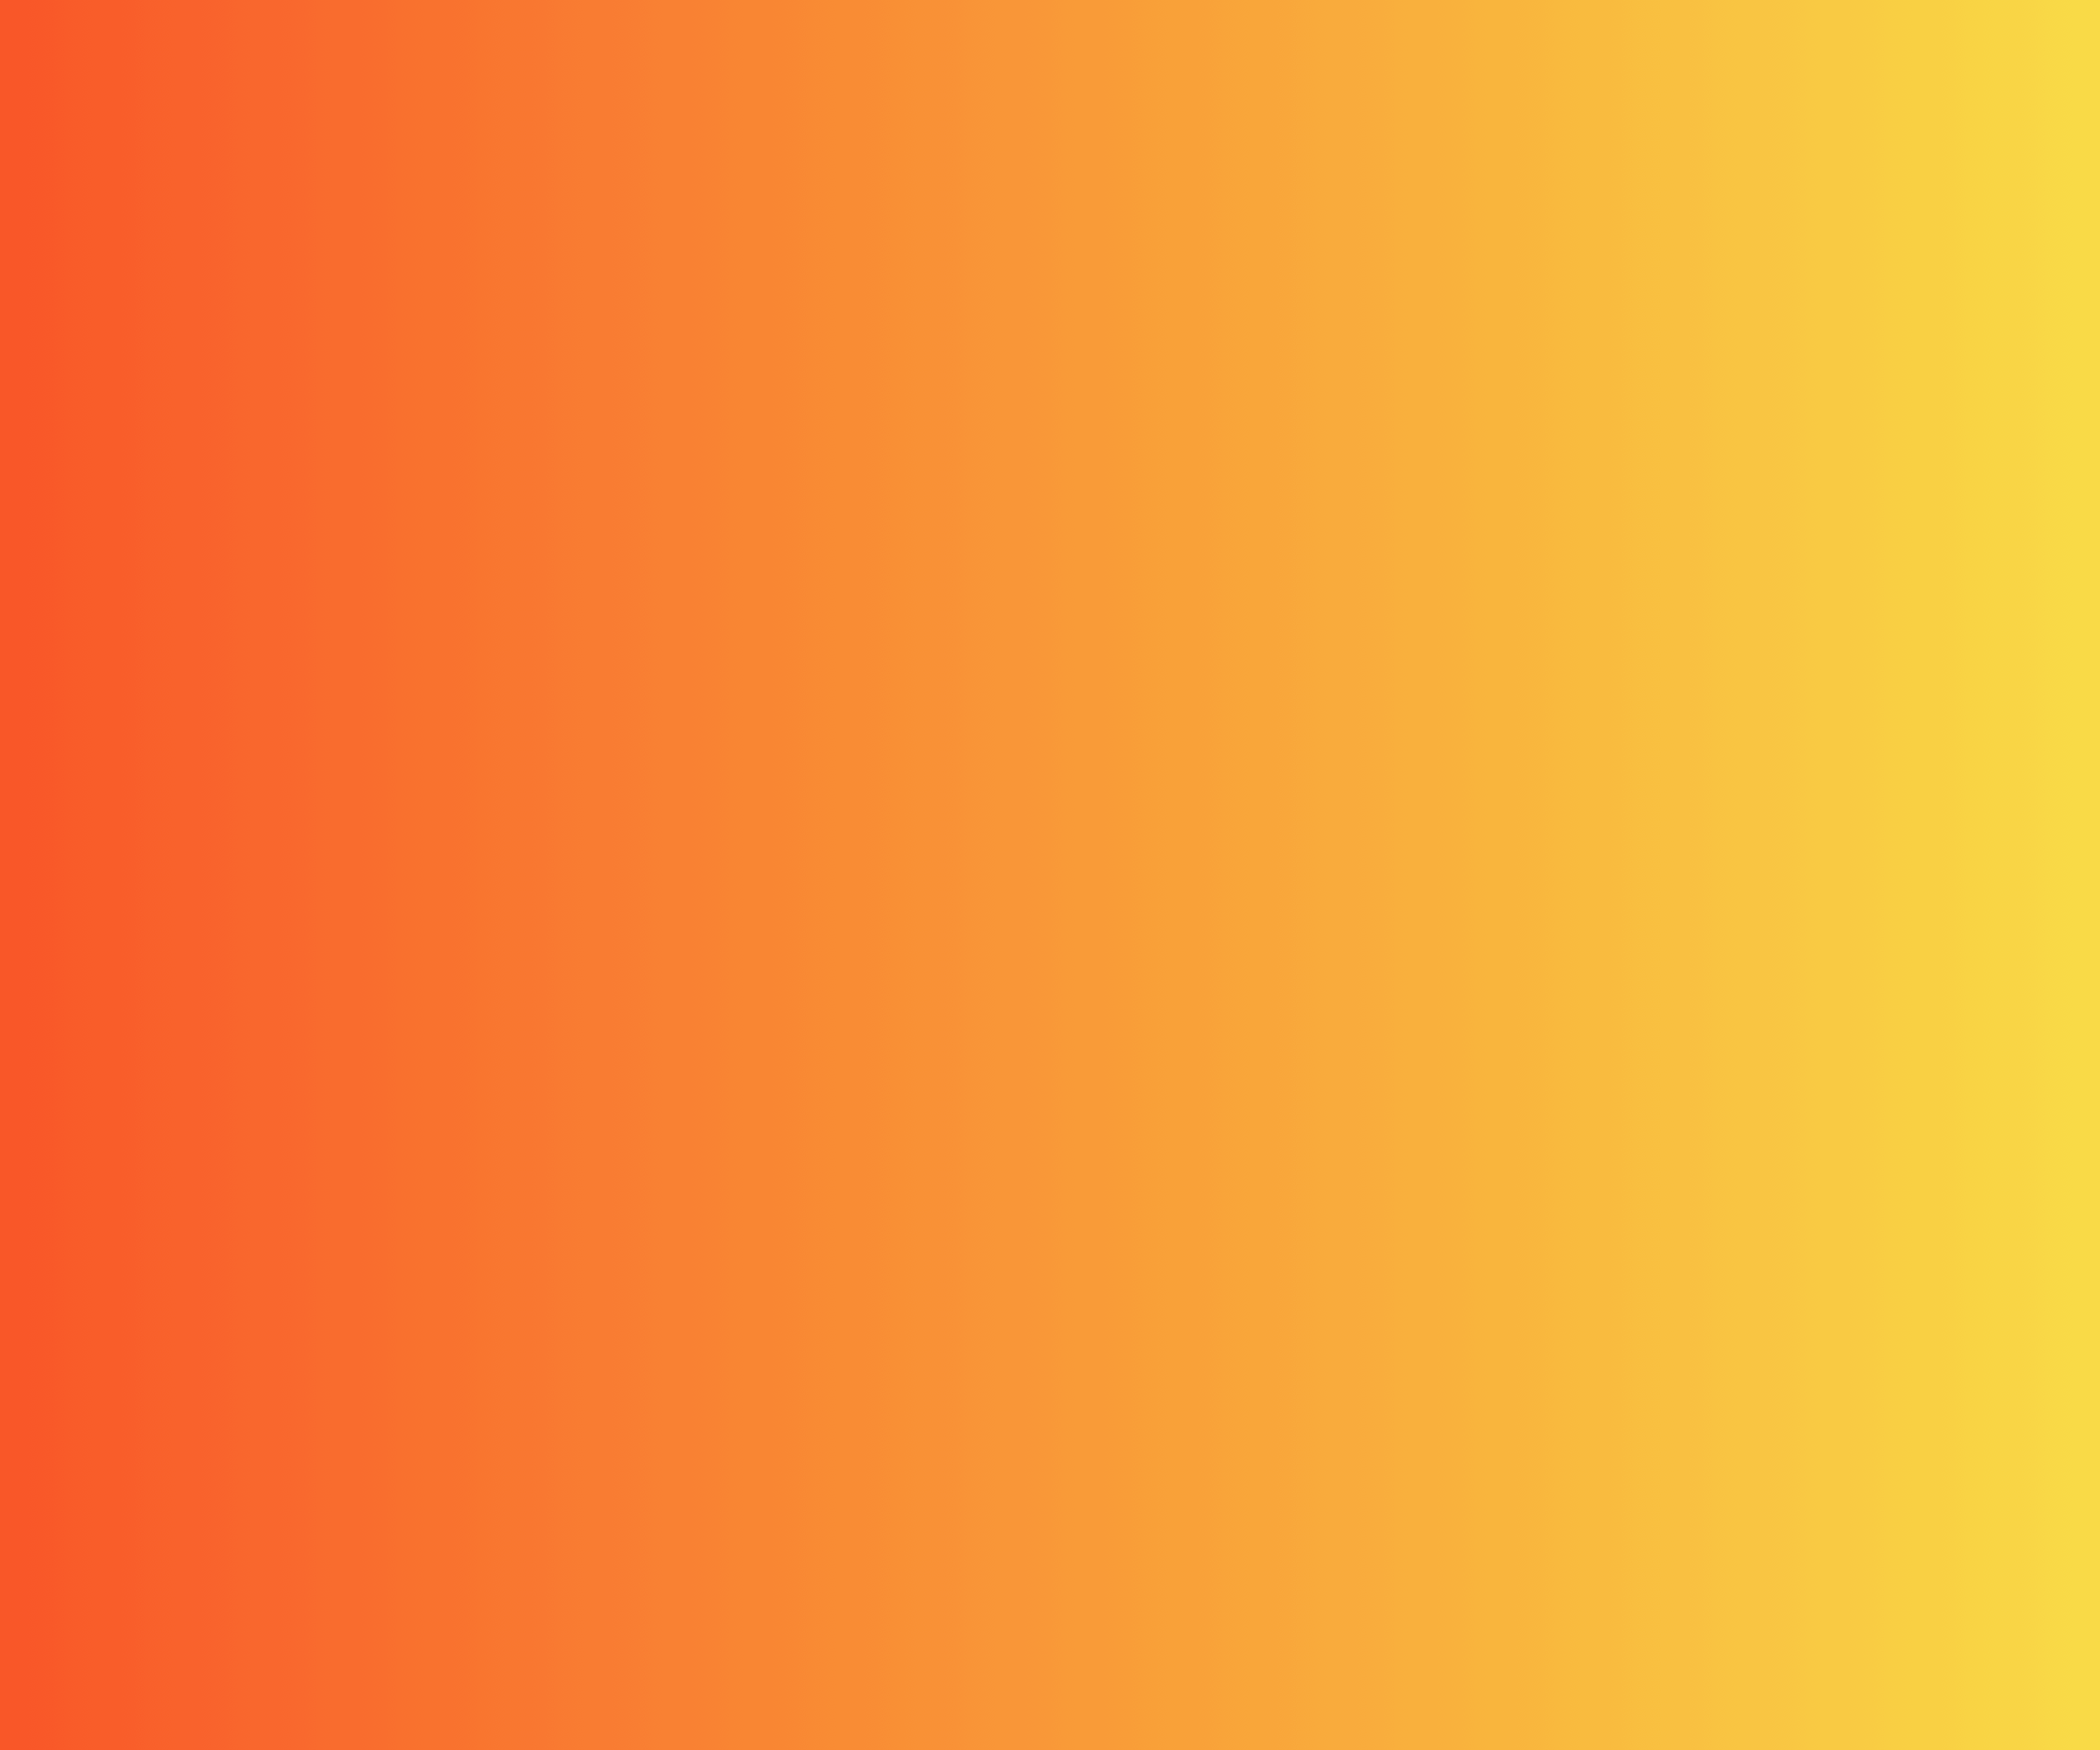 Red gradient png. Fresh background gradients webgradients